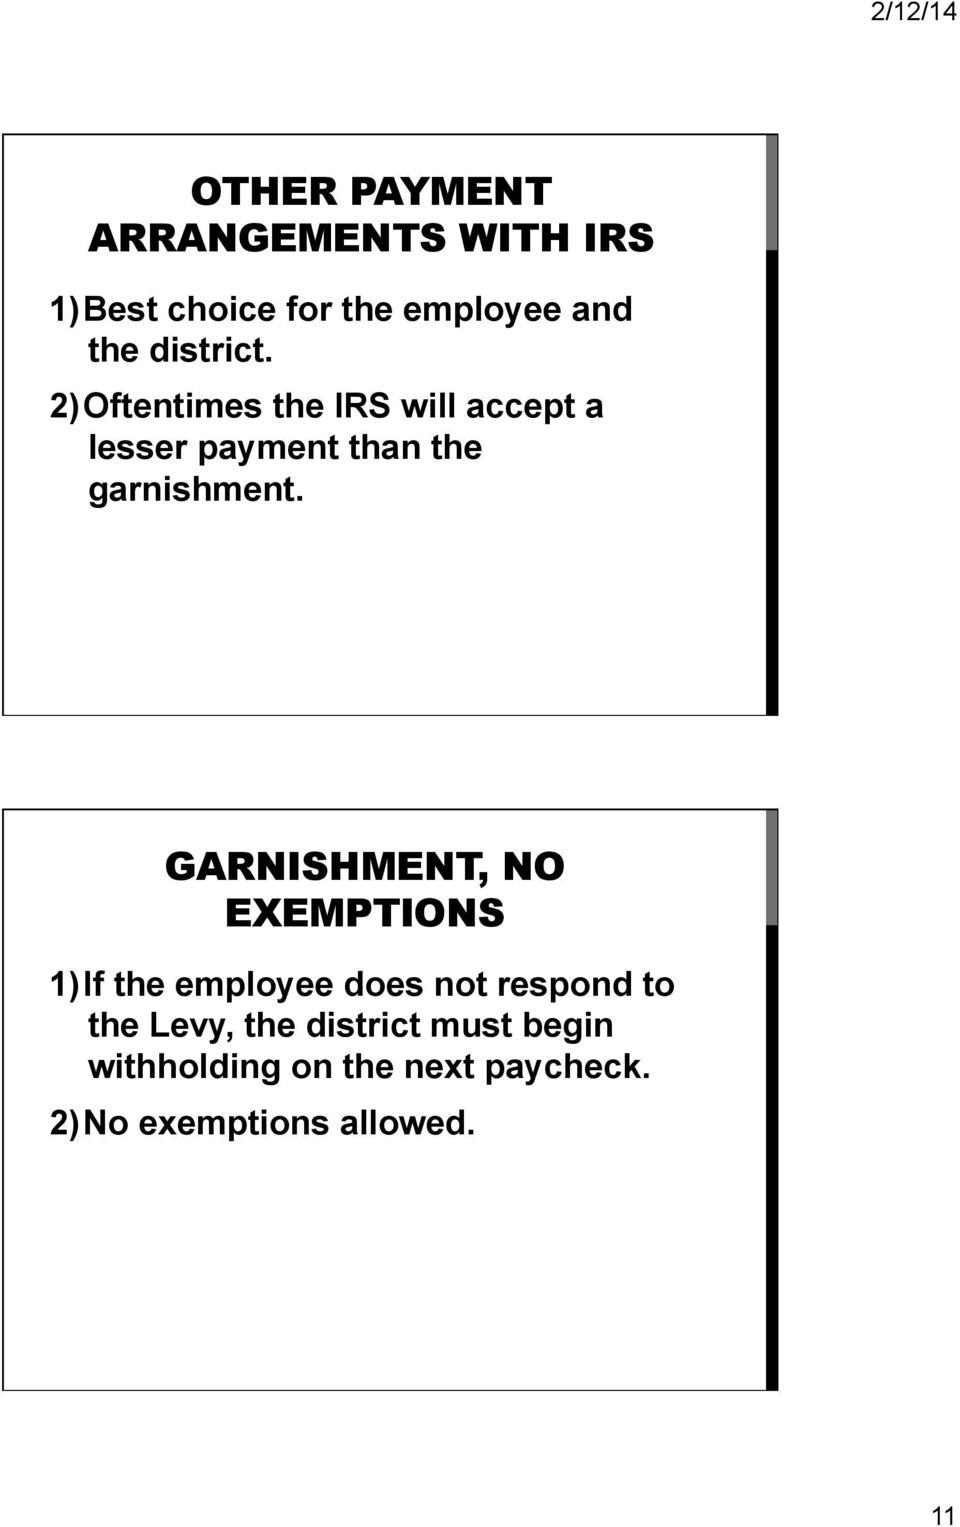 2) Oftentimes the IRS will accept a lesser payment than the garnishment.